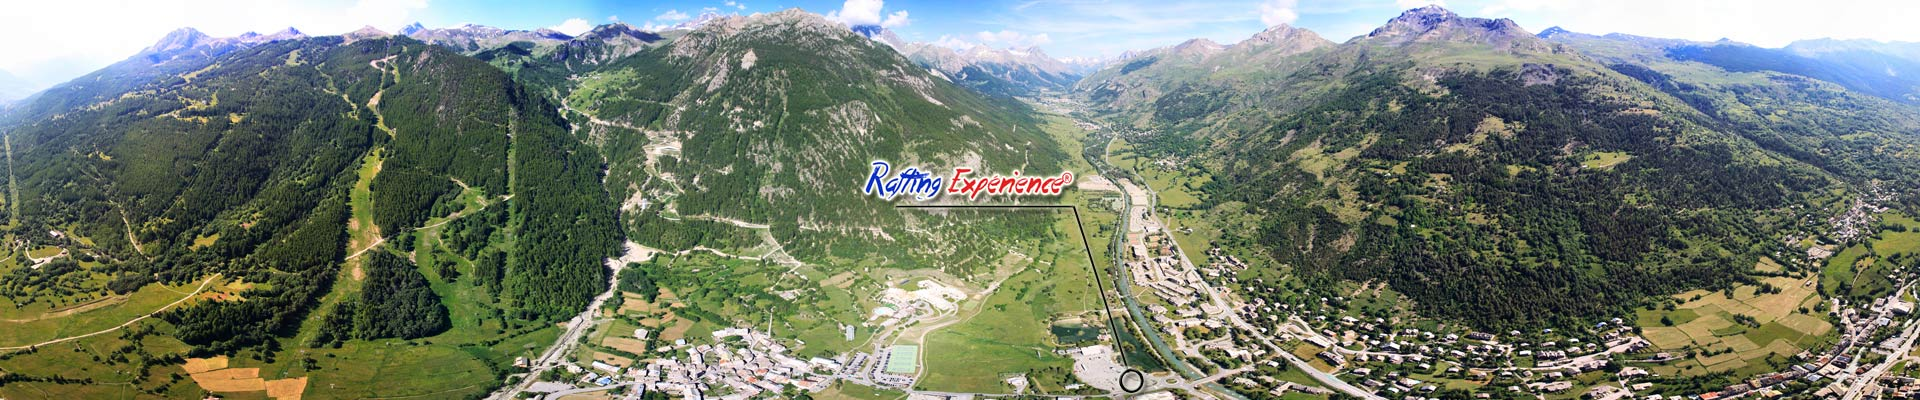 serre chevalier from the sky